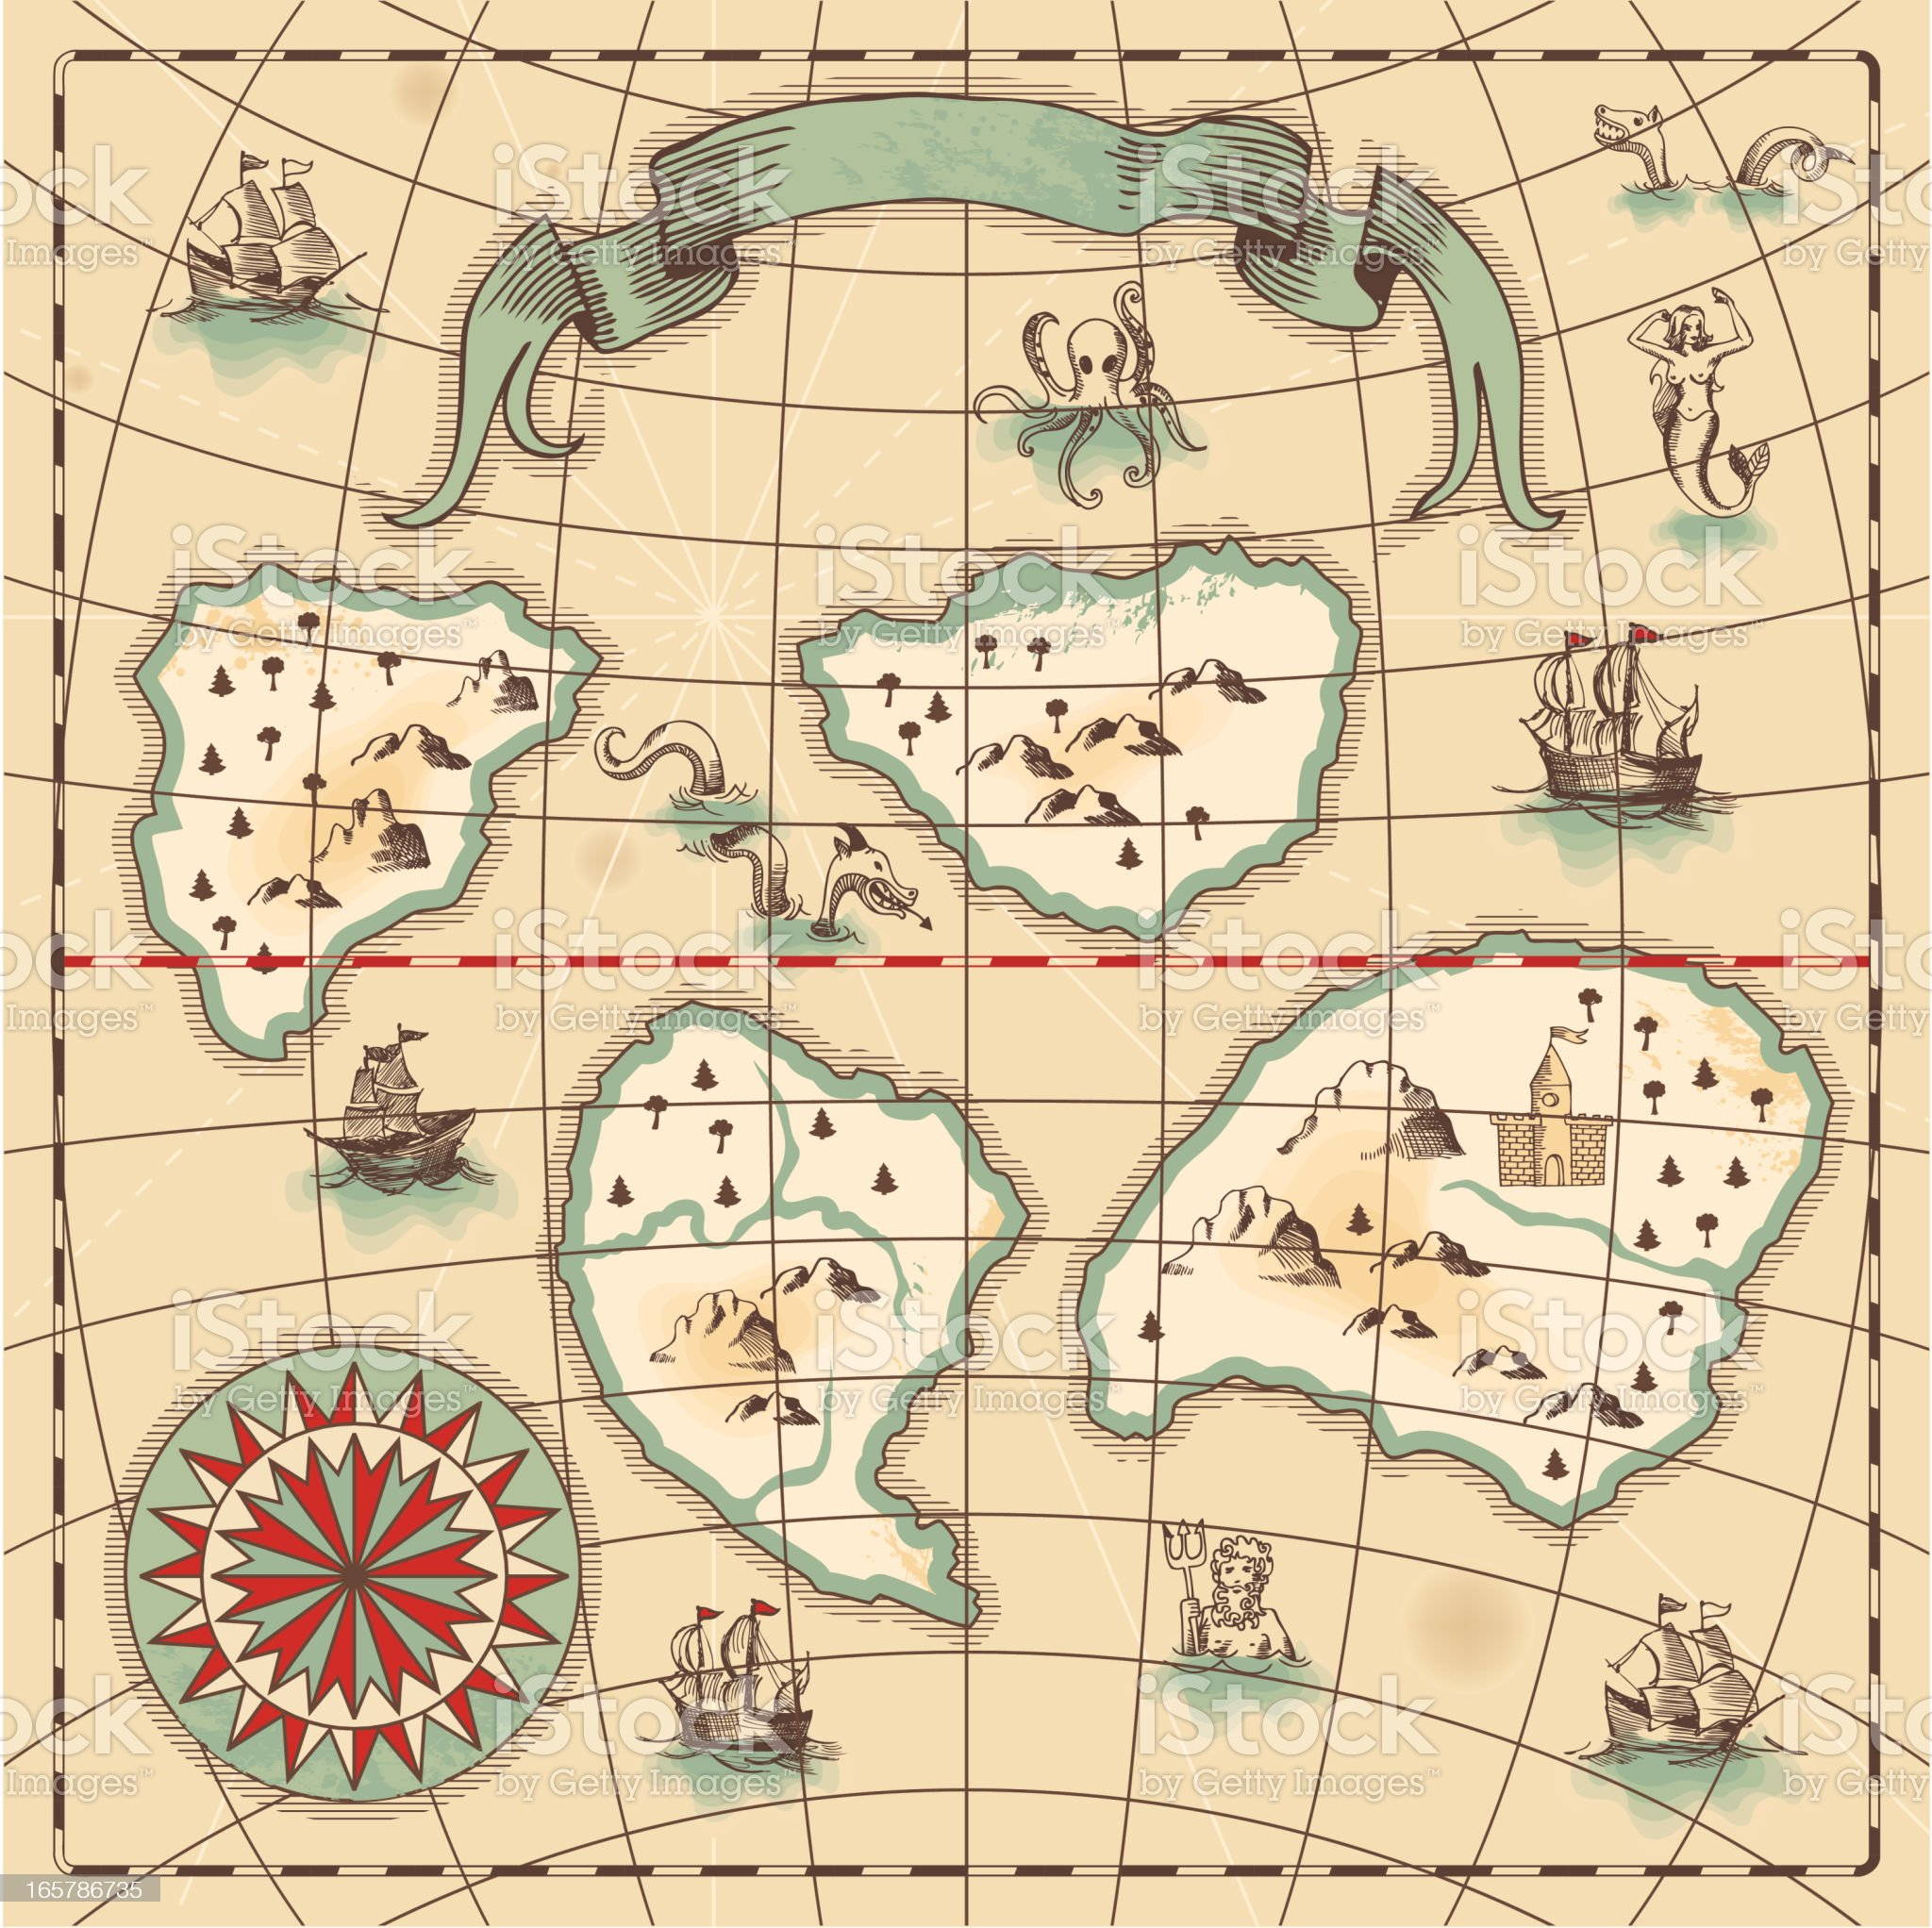 Hand-drawn antique ocean map. royalty-free stock vector art